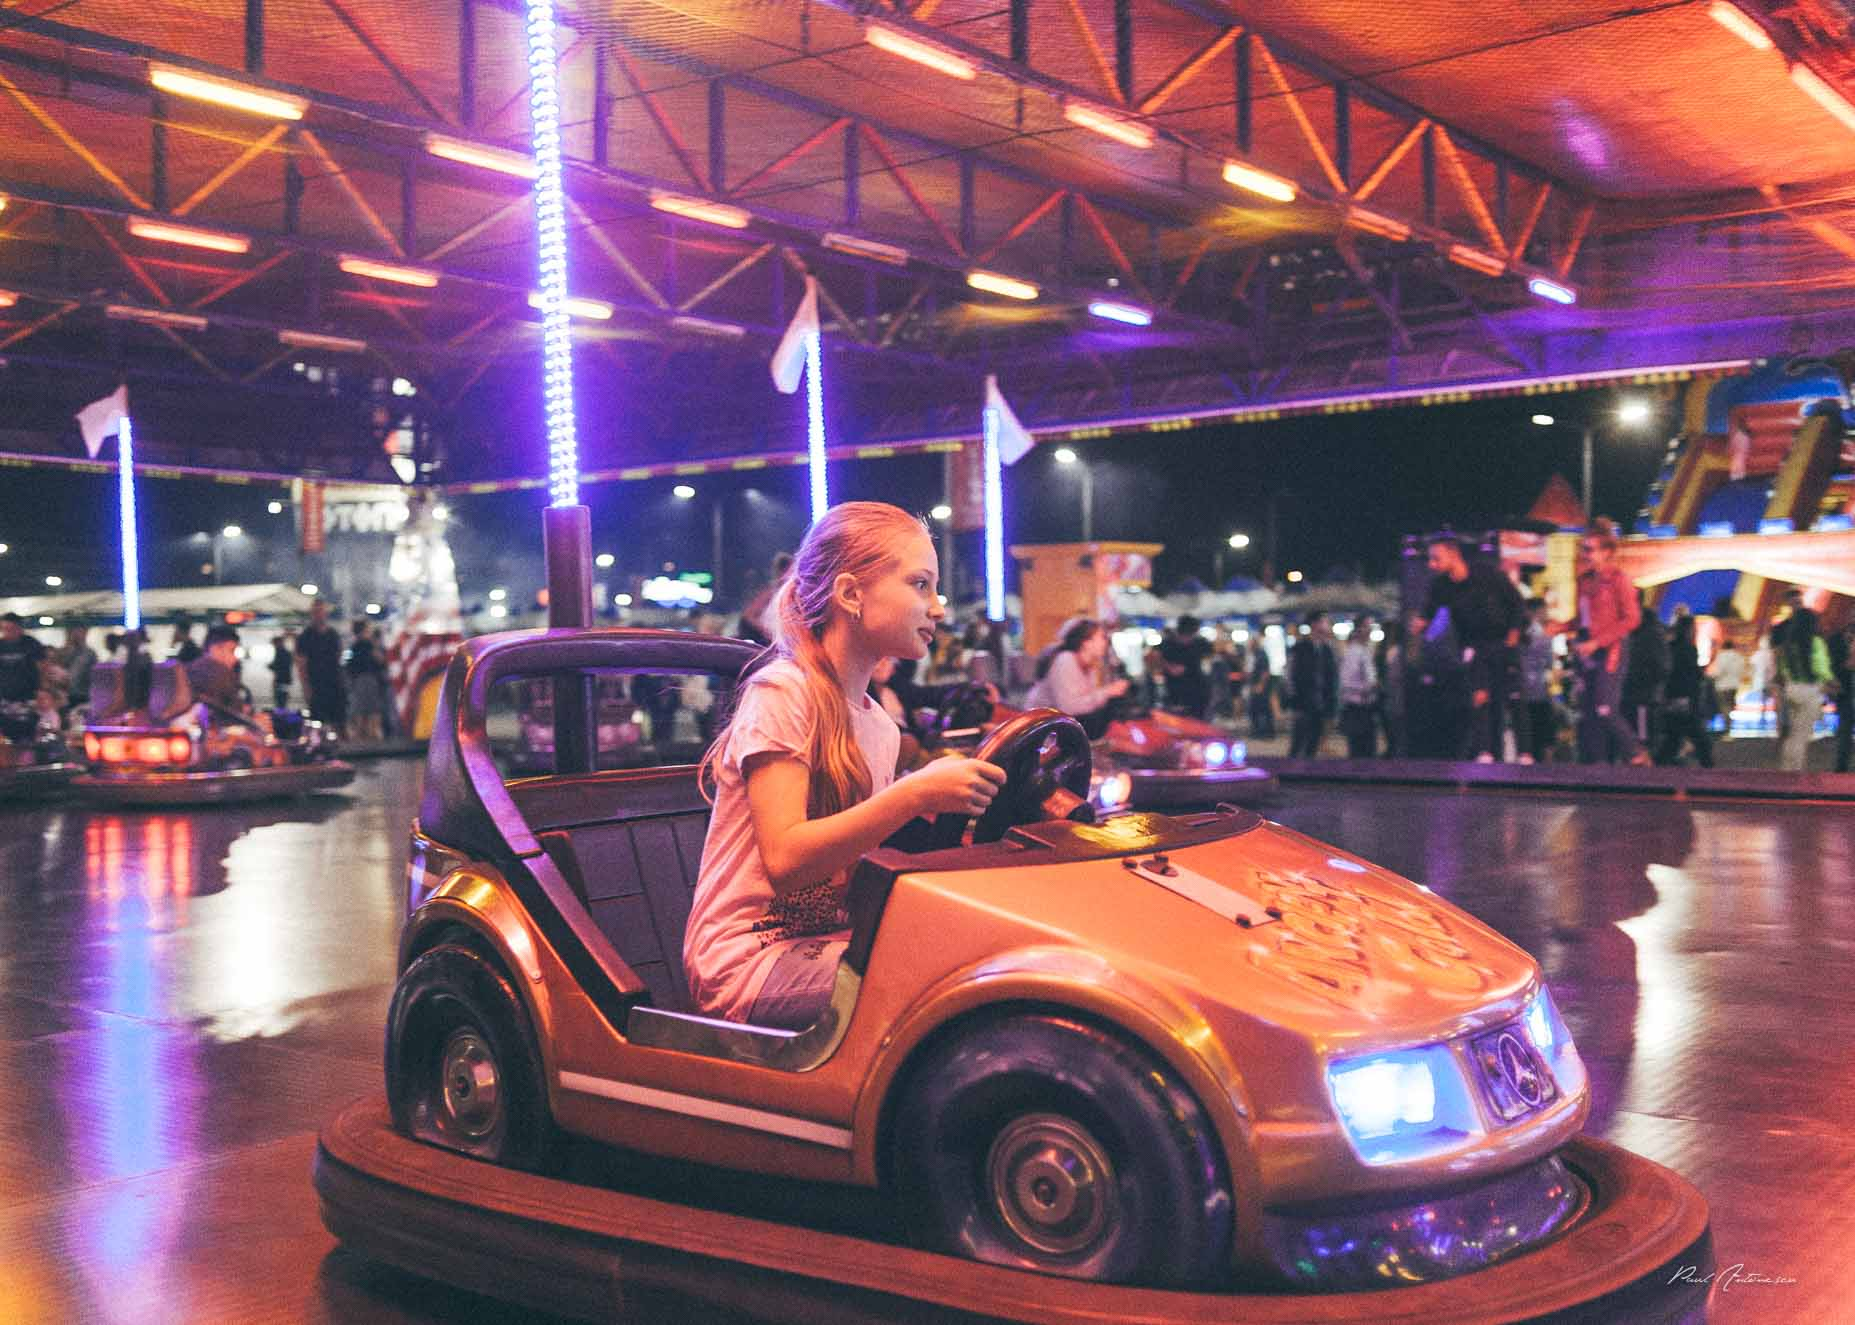 Girl in bumper car at the assessment park